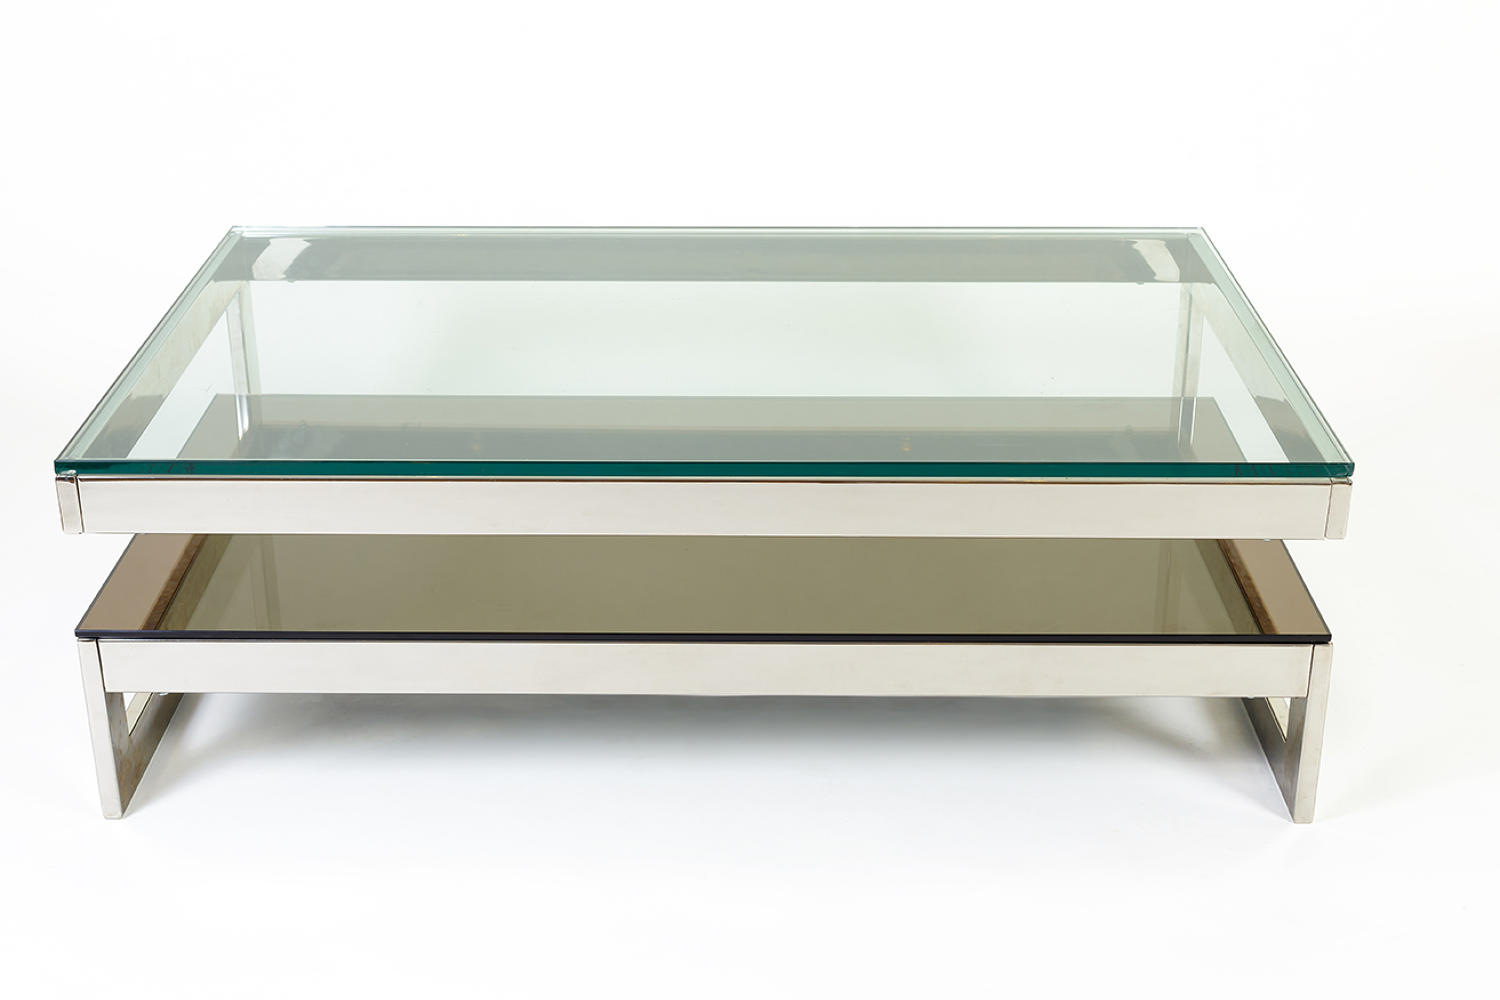 G shaped chrome coffee table